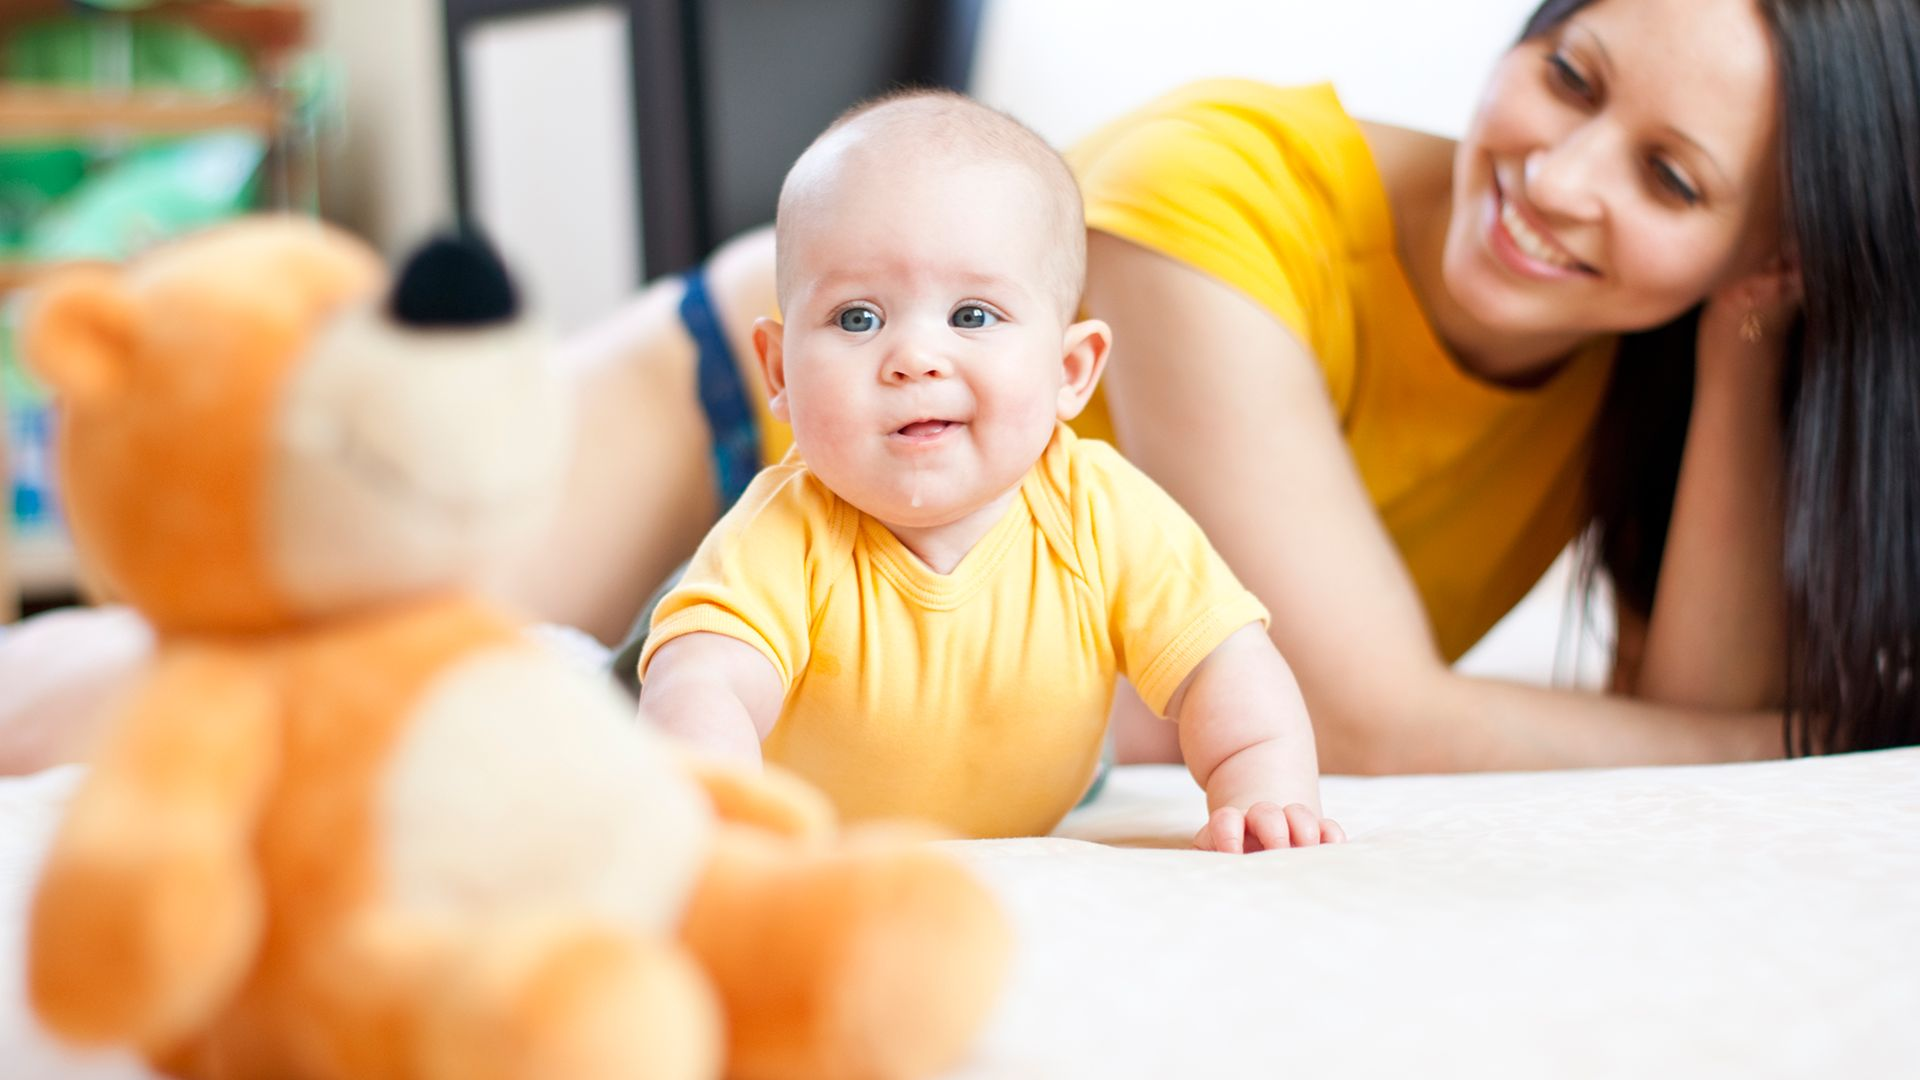 baby_with_toy_out_of_reach